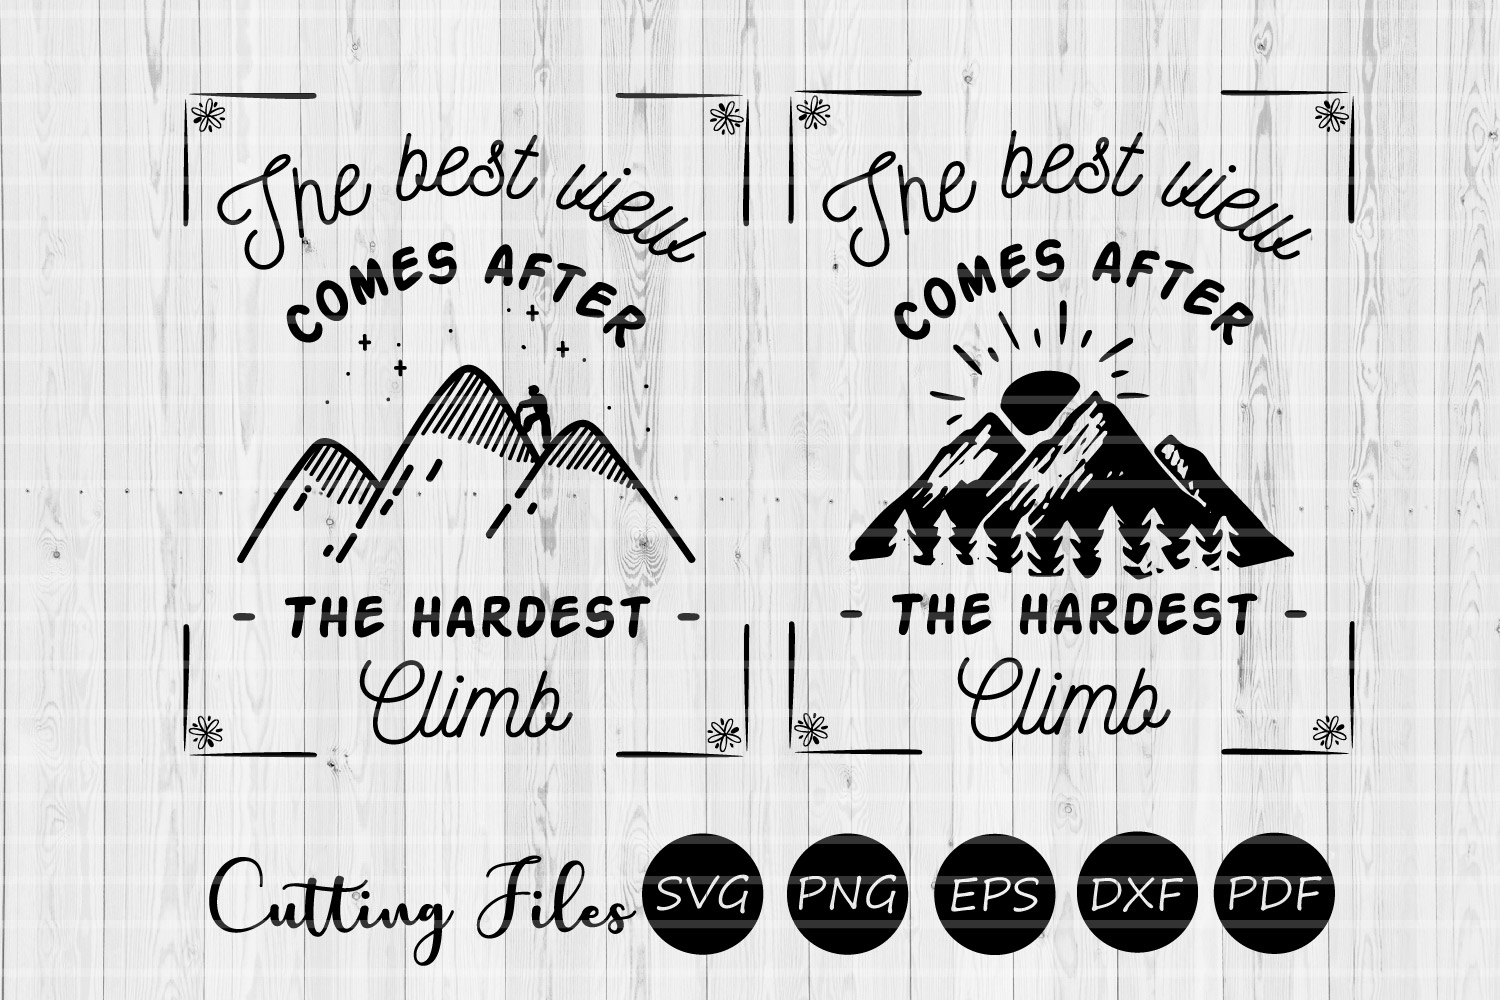 The best view comes after| SVG cut file | Motivational | example image 1